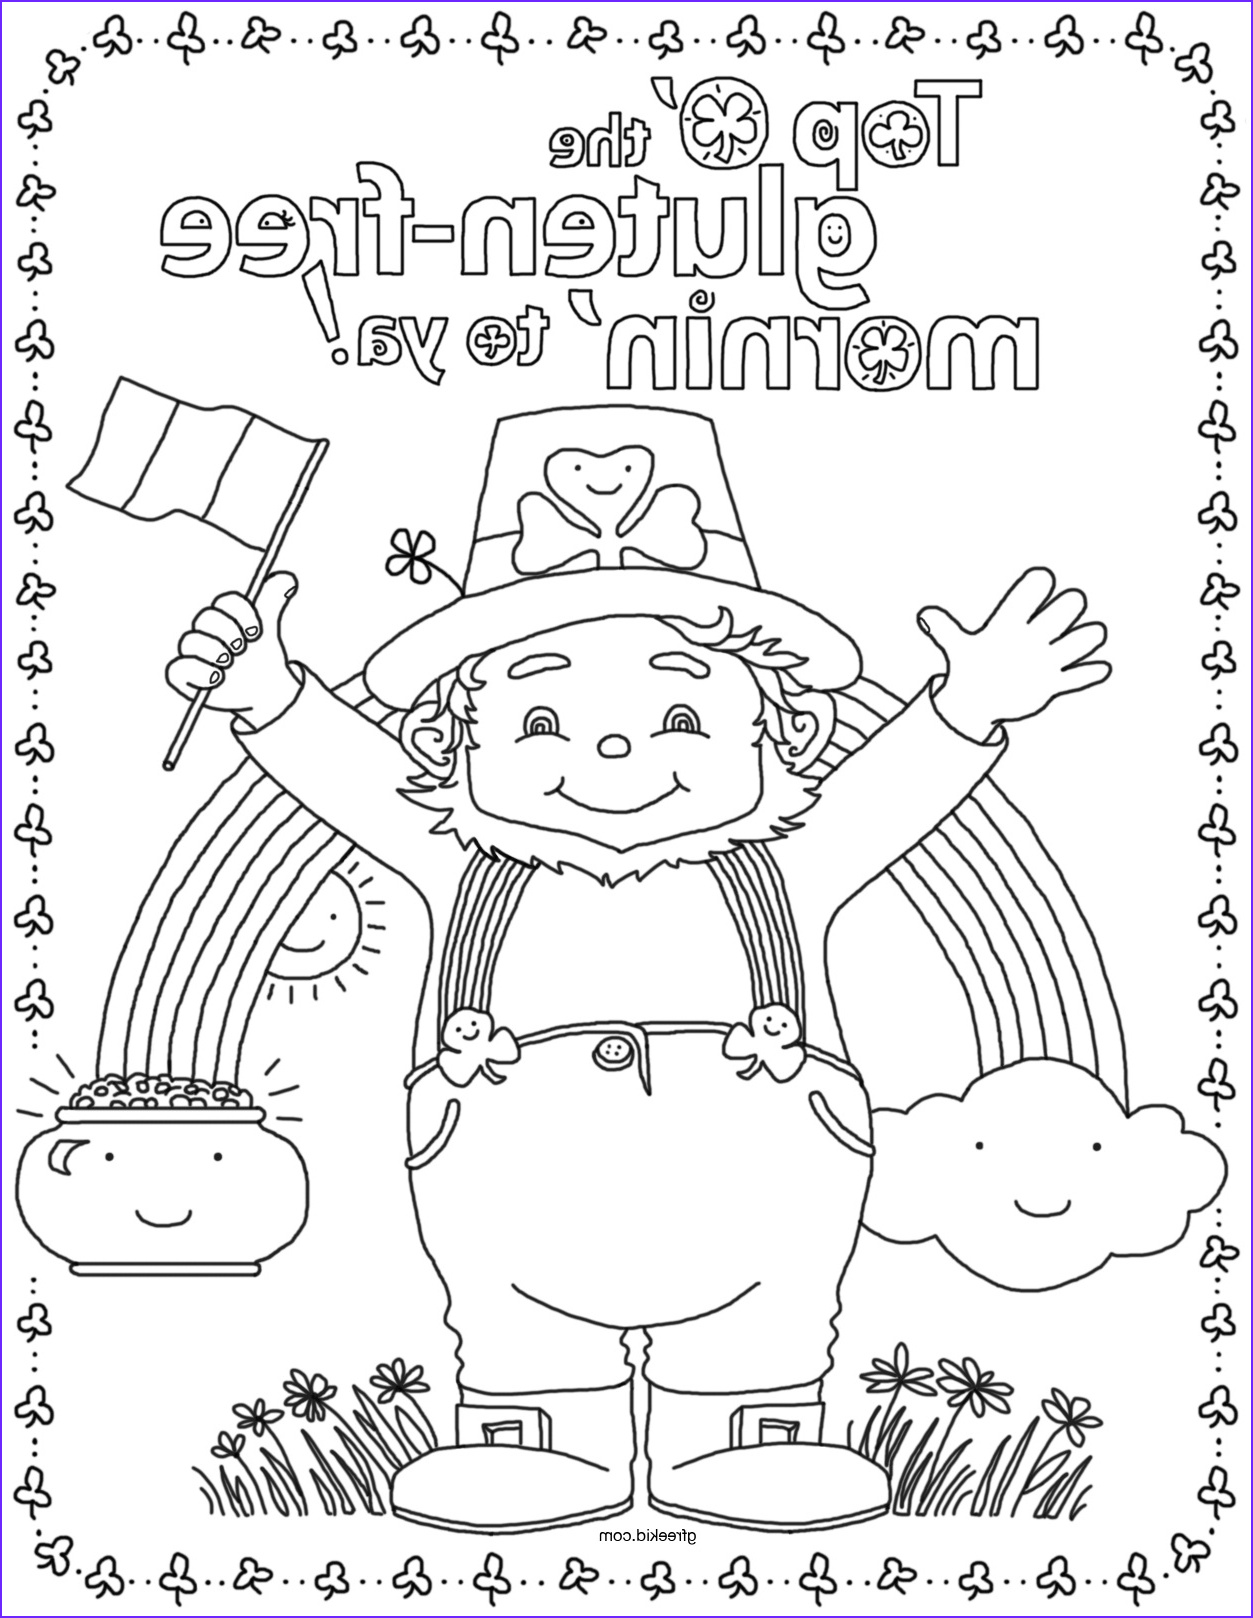 Saint Patrick Coloring Beautiful Photos Simple St Patrick's Day Ideas and Coloring Page for